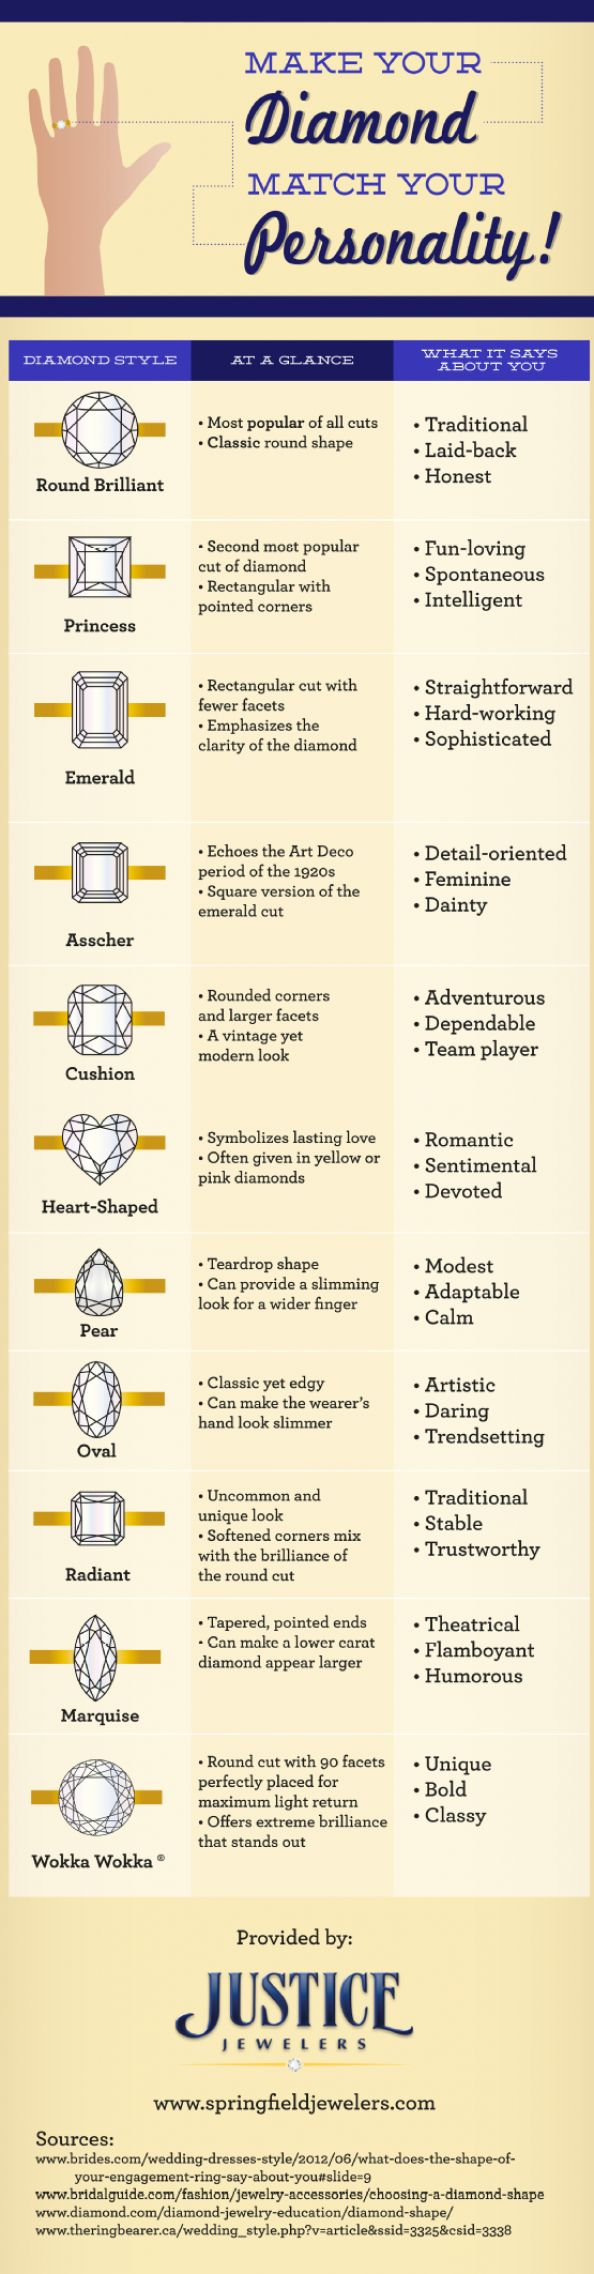 Make Your Diamond Match Your Personality Infographic, I looove the Wokka Wokka